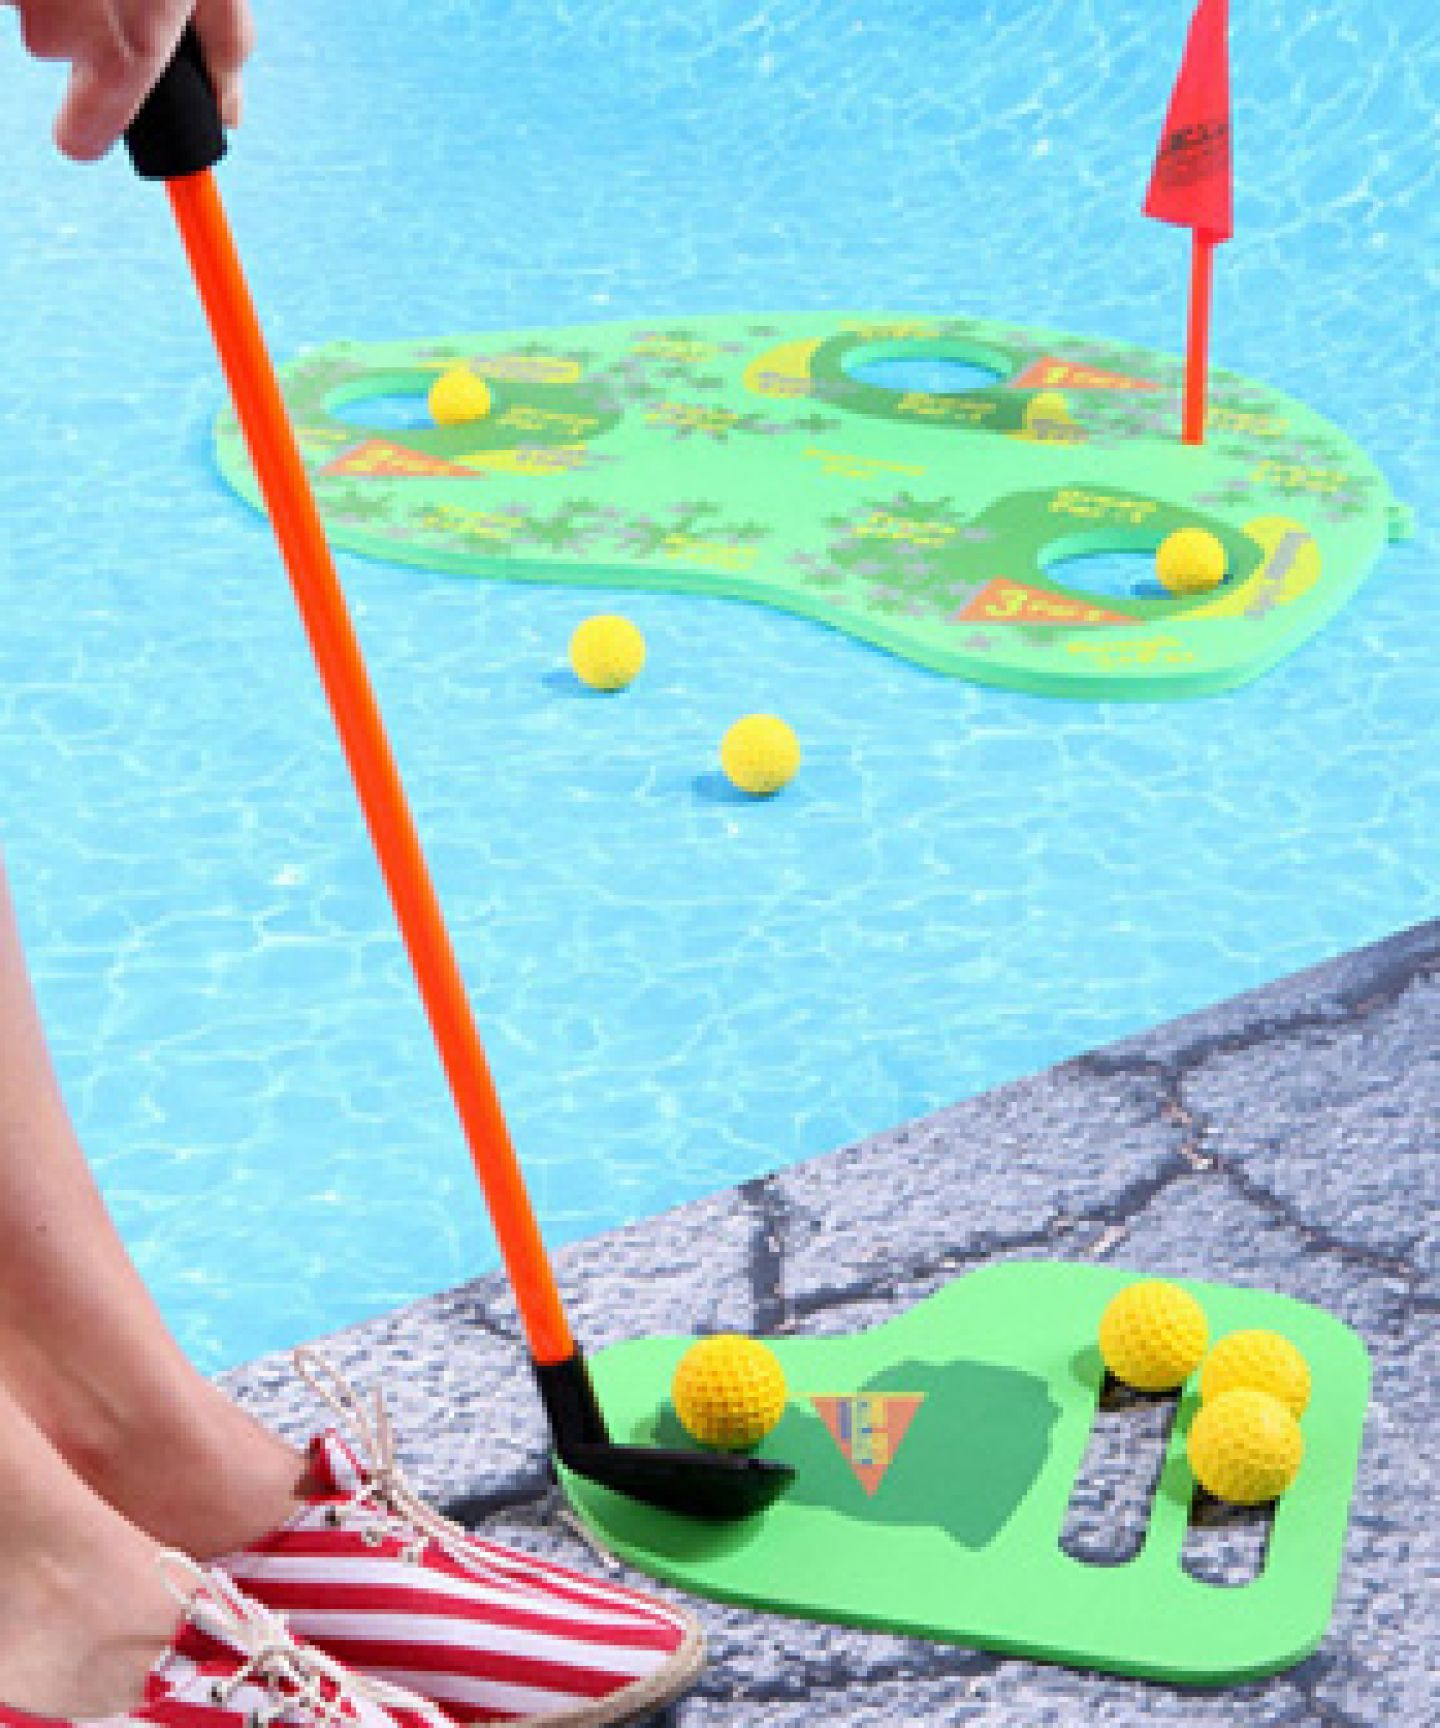 Pool Accessories Waterproof Gadgets, Toys, And Tools For